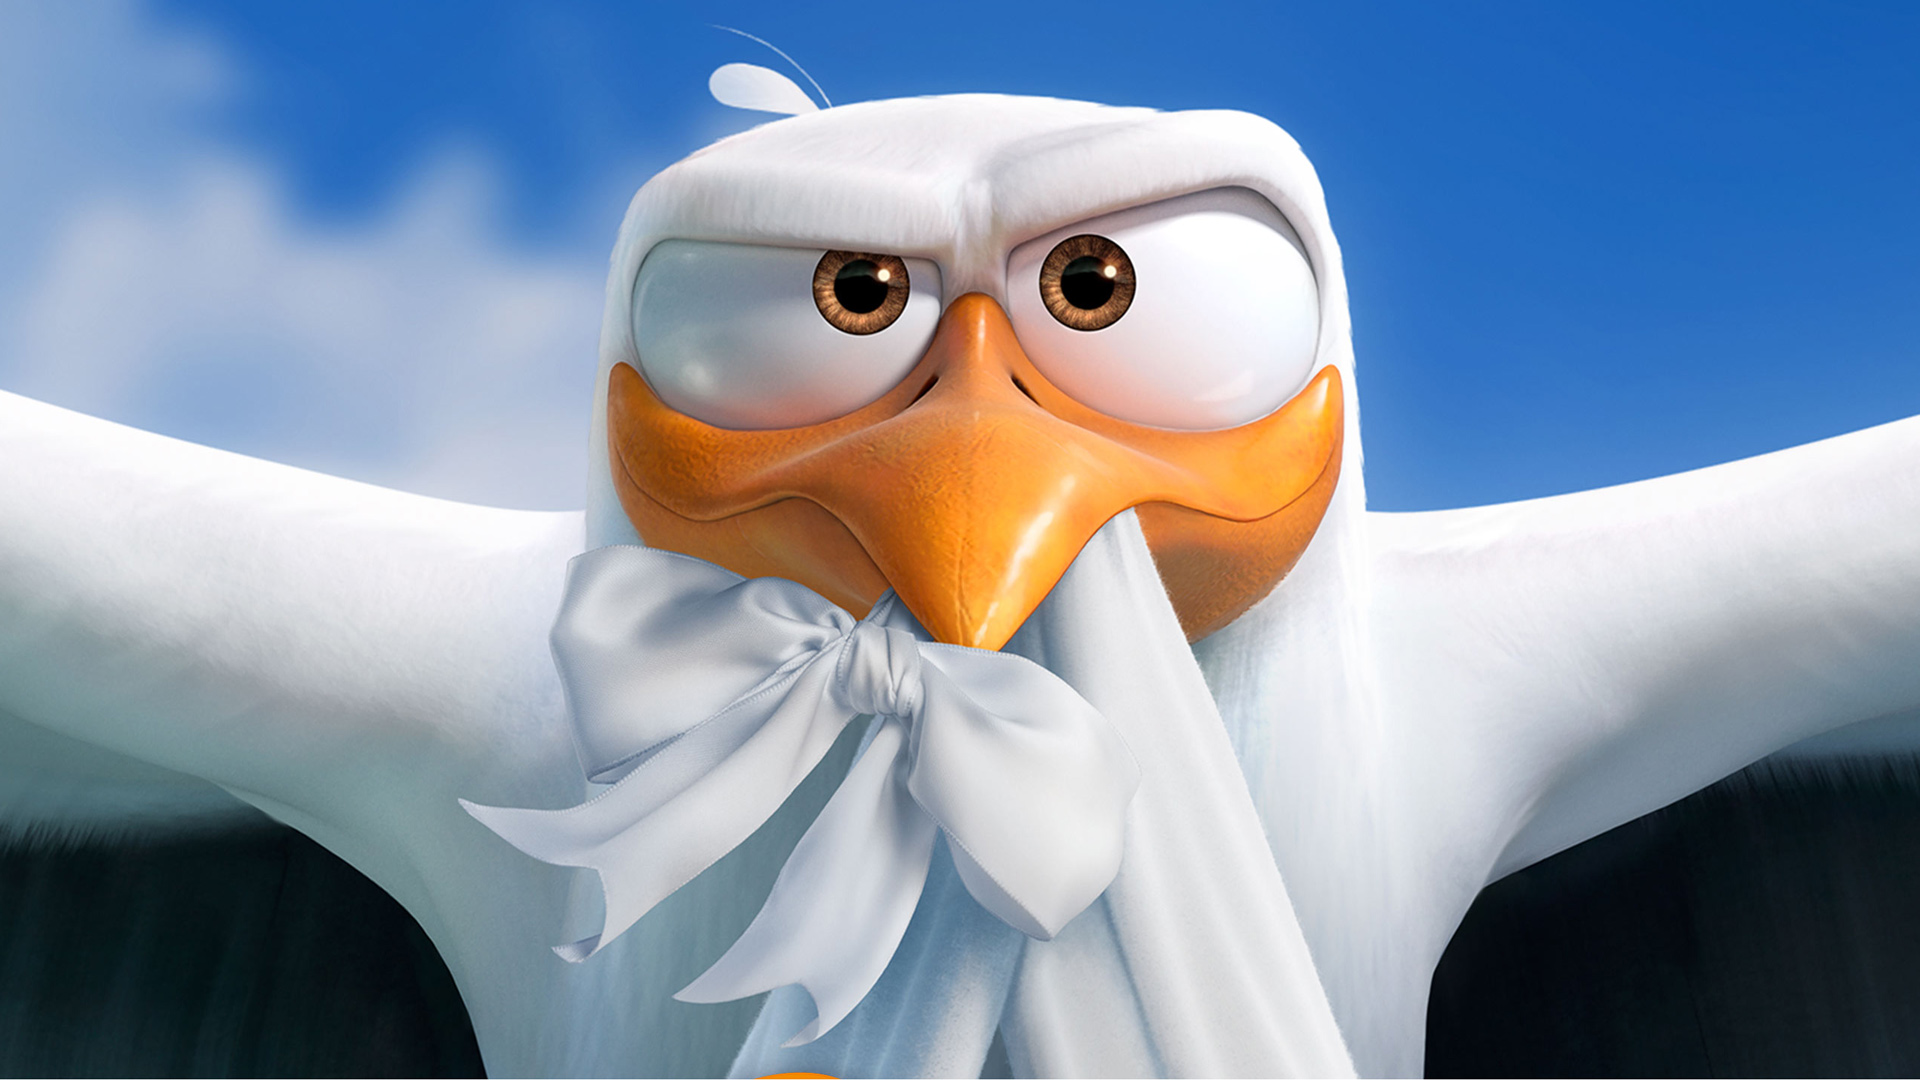 Storks Animated Movie, Hd Movies, 4K Wallpapers, Images -3136